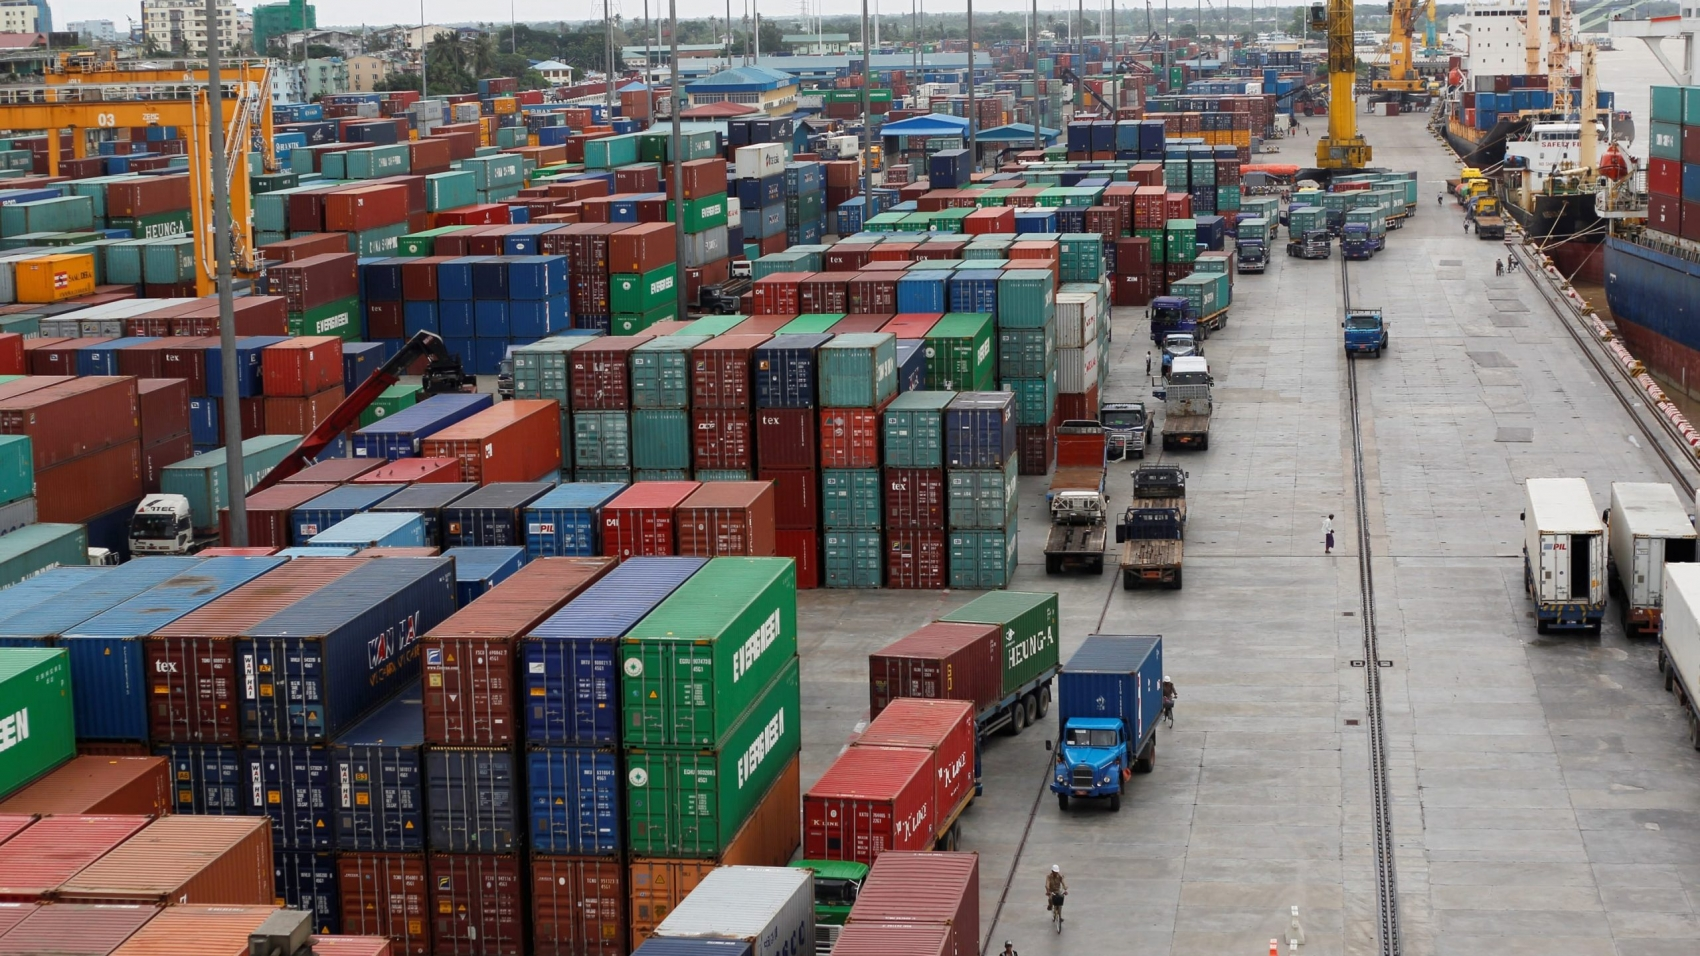 Myanmar-trade-port-container-river-export-economy-business-investment-ship-2